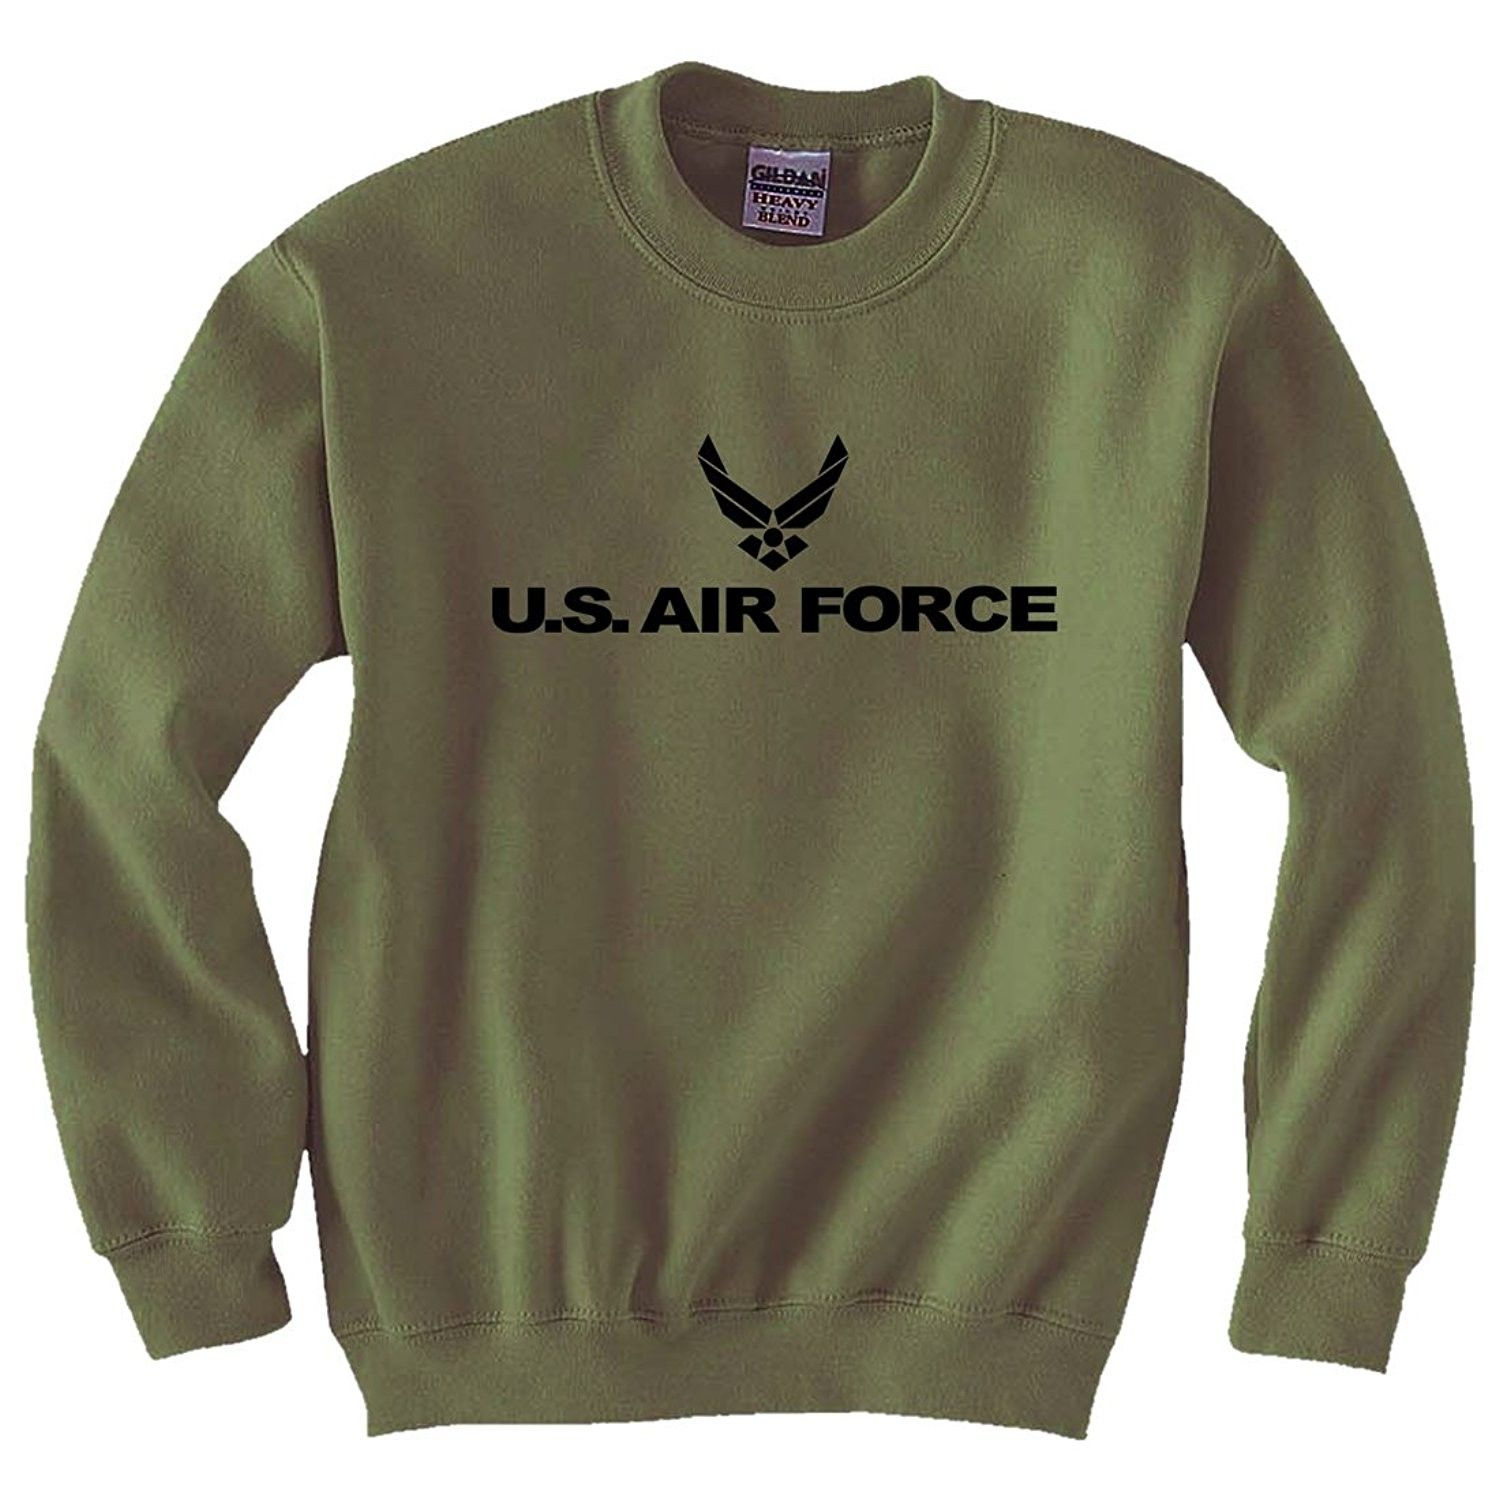 Men S Clothing Active Active Sweatshirts Air Force Military Style Physical Training Crewneck Sweatshirt Air Force Sweatshirt Sweatshirts Military Fashion [ 1500 x 1500 Pixel ]